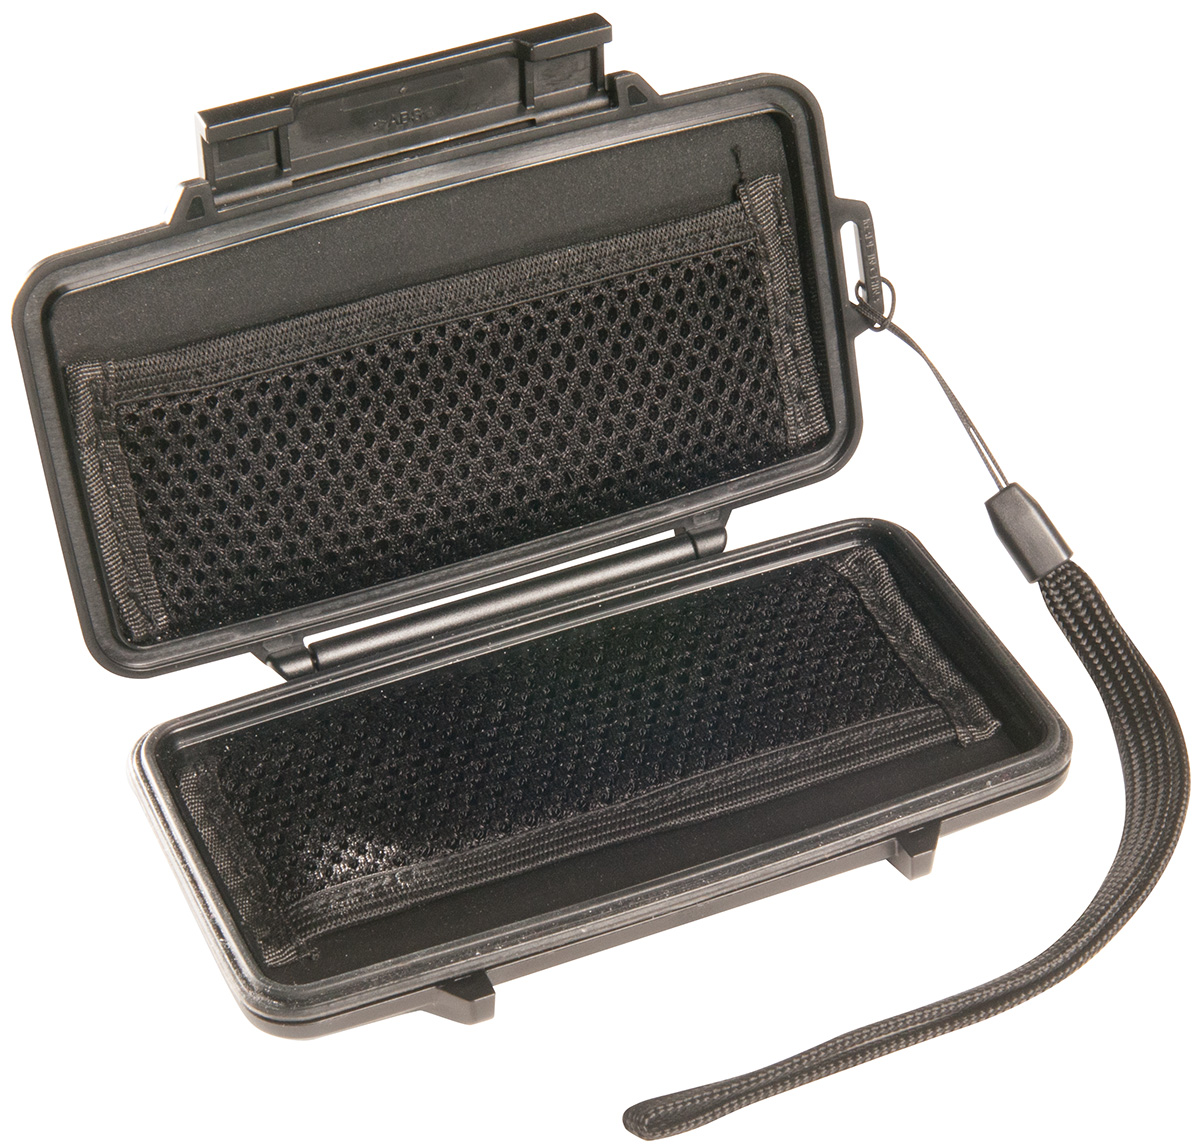 pelican peli products 0955 watertight plastic hard wallet case